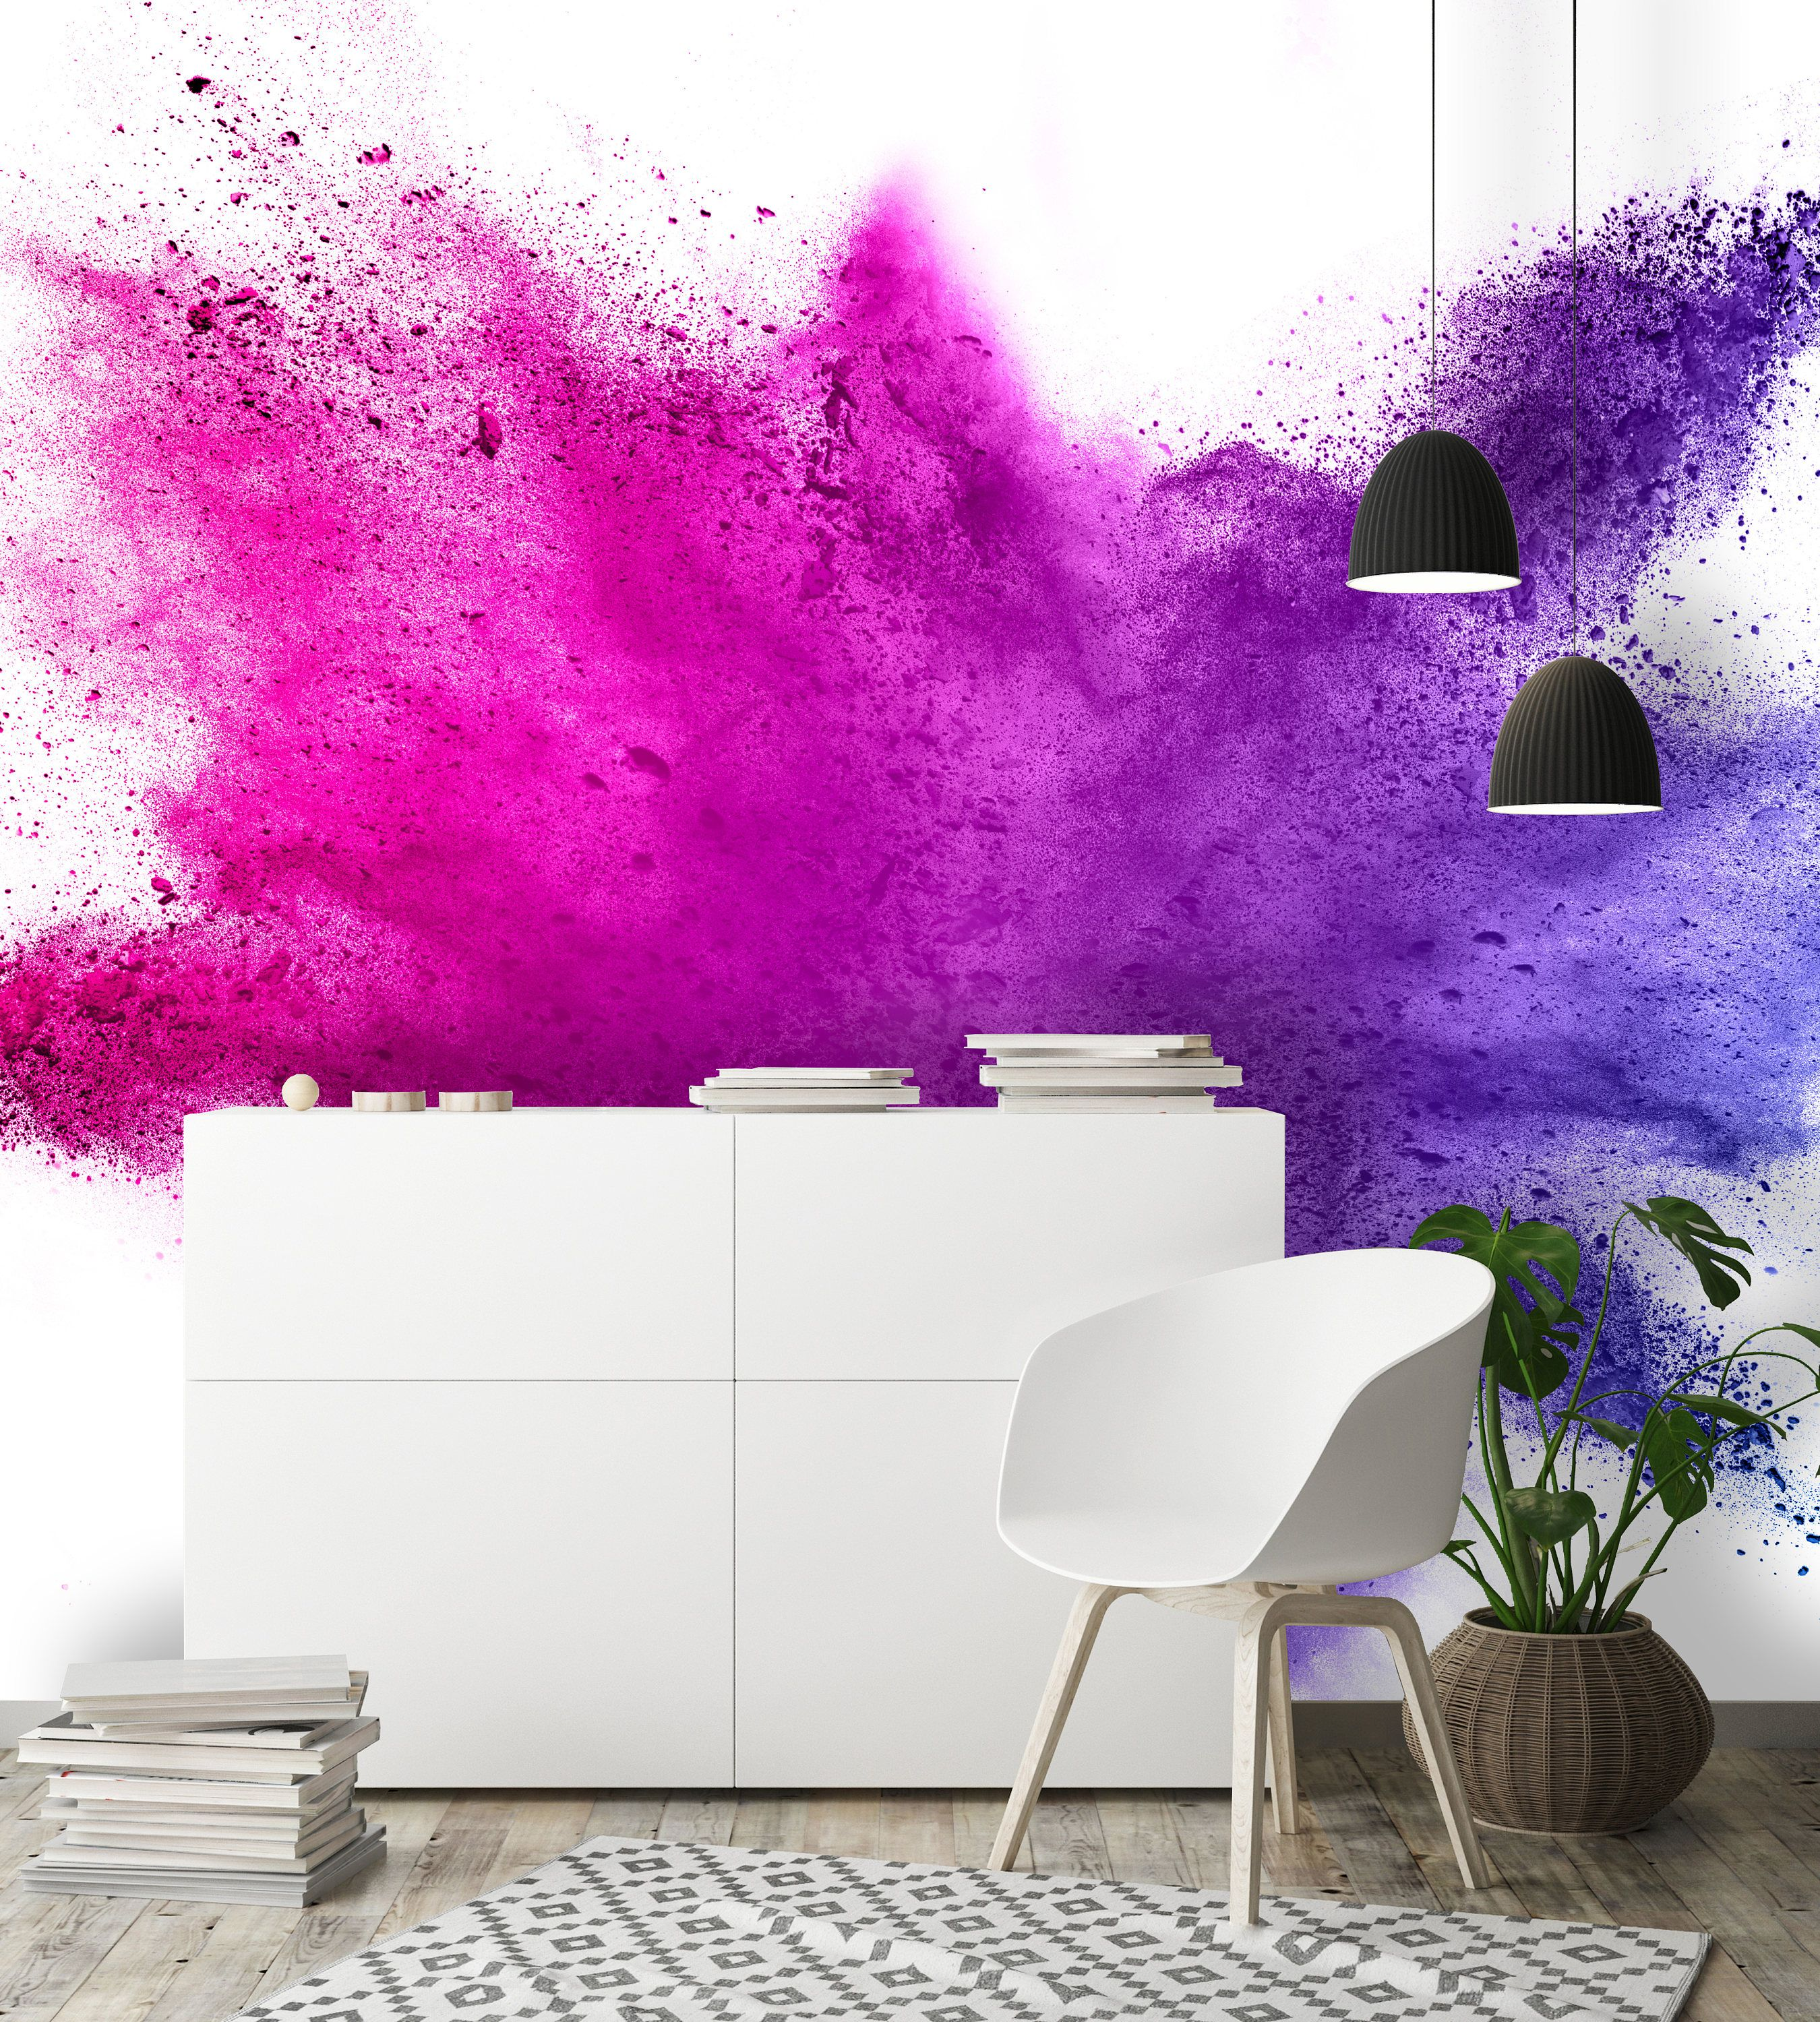 Removable Wallpaper Mural Peel & Stick 3D Explosion of